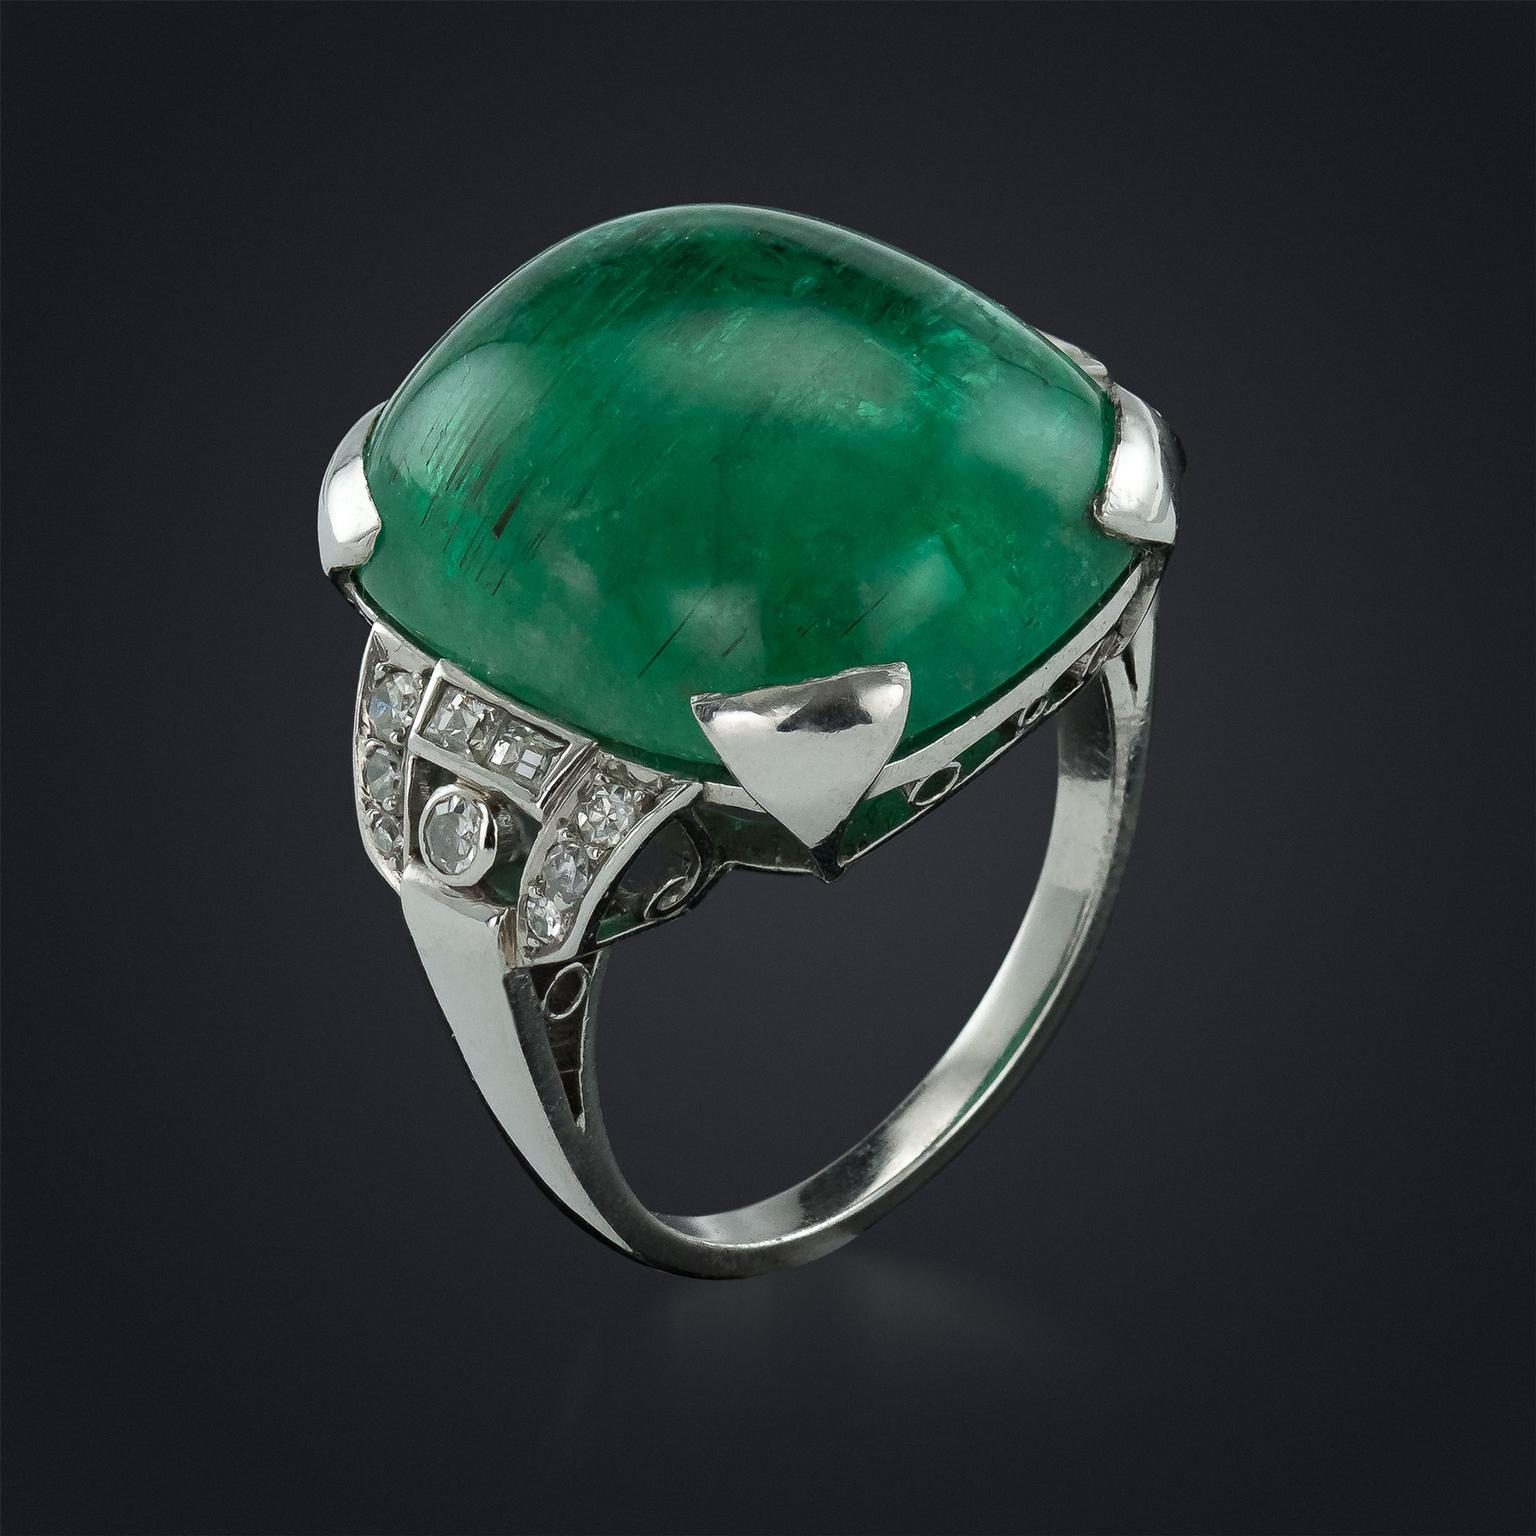 Vintage 20-carat cabochon emerald ring in platinum with diamonds